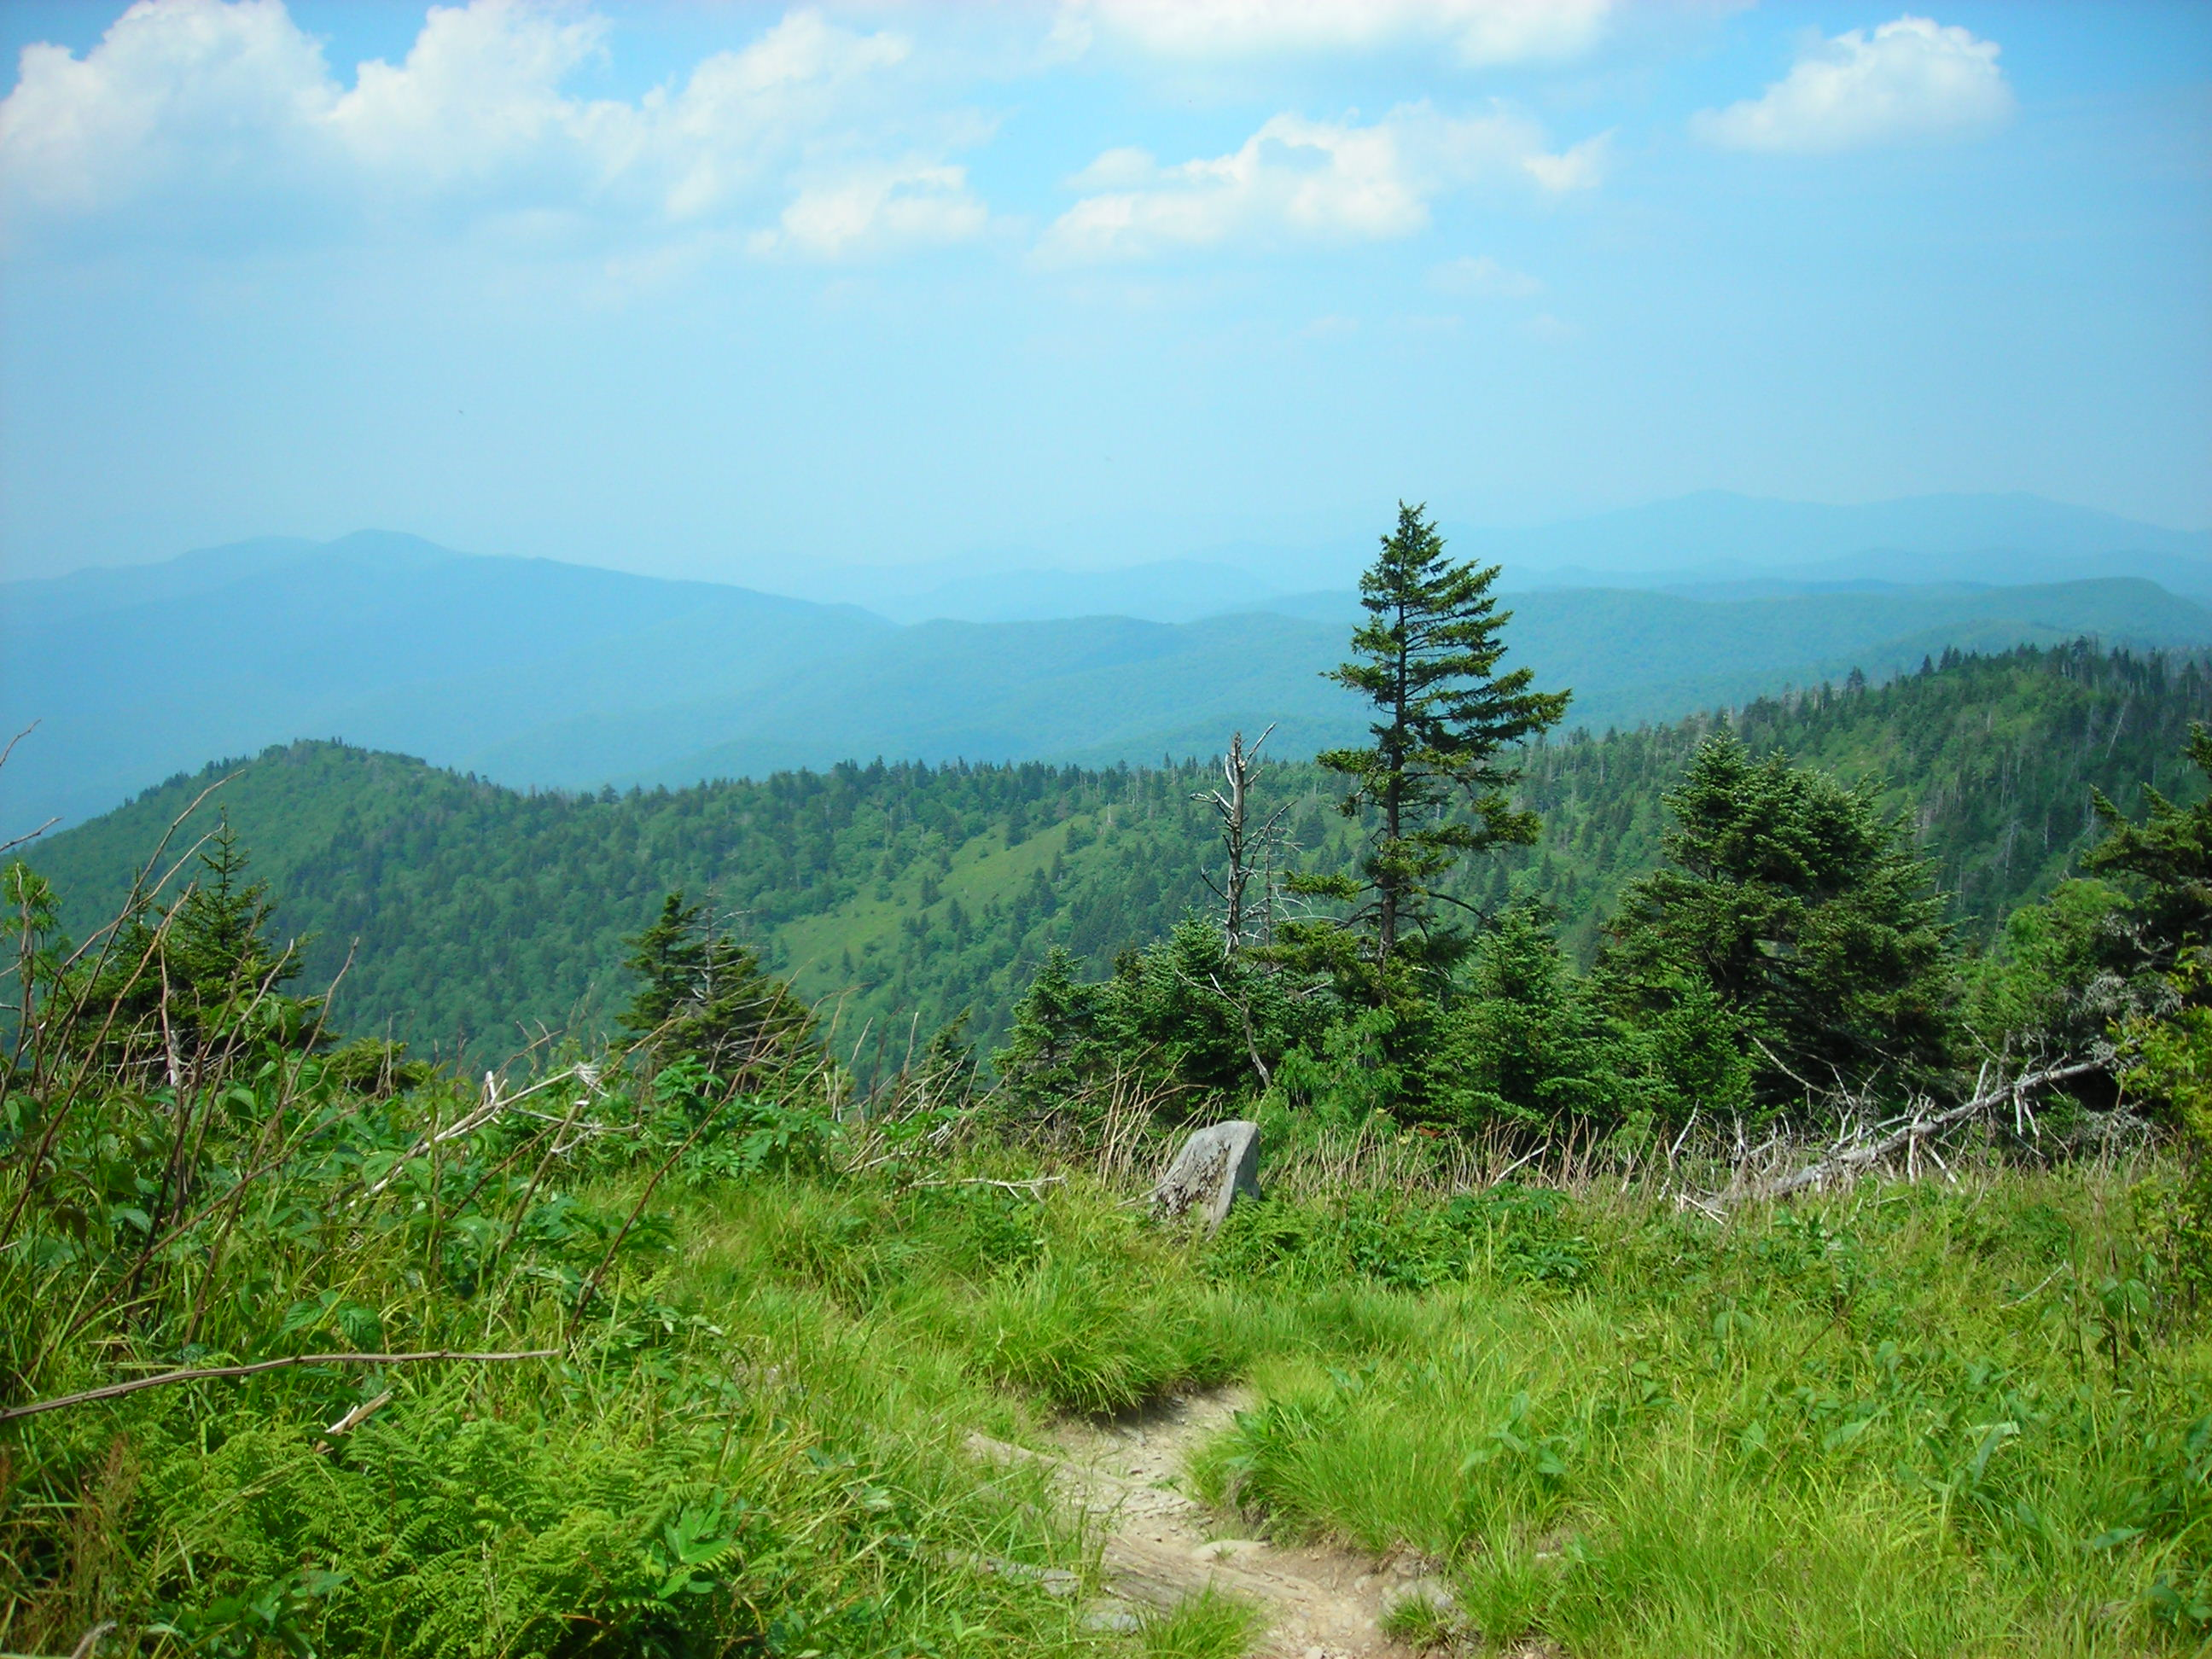 Hiker Missing For Two Years Sent These Heartbreaking Last Texts Appalachian Trail Heading to Double Springs Gap From Clingmans Dome